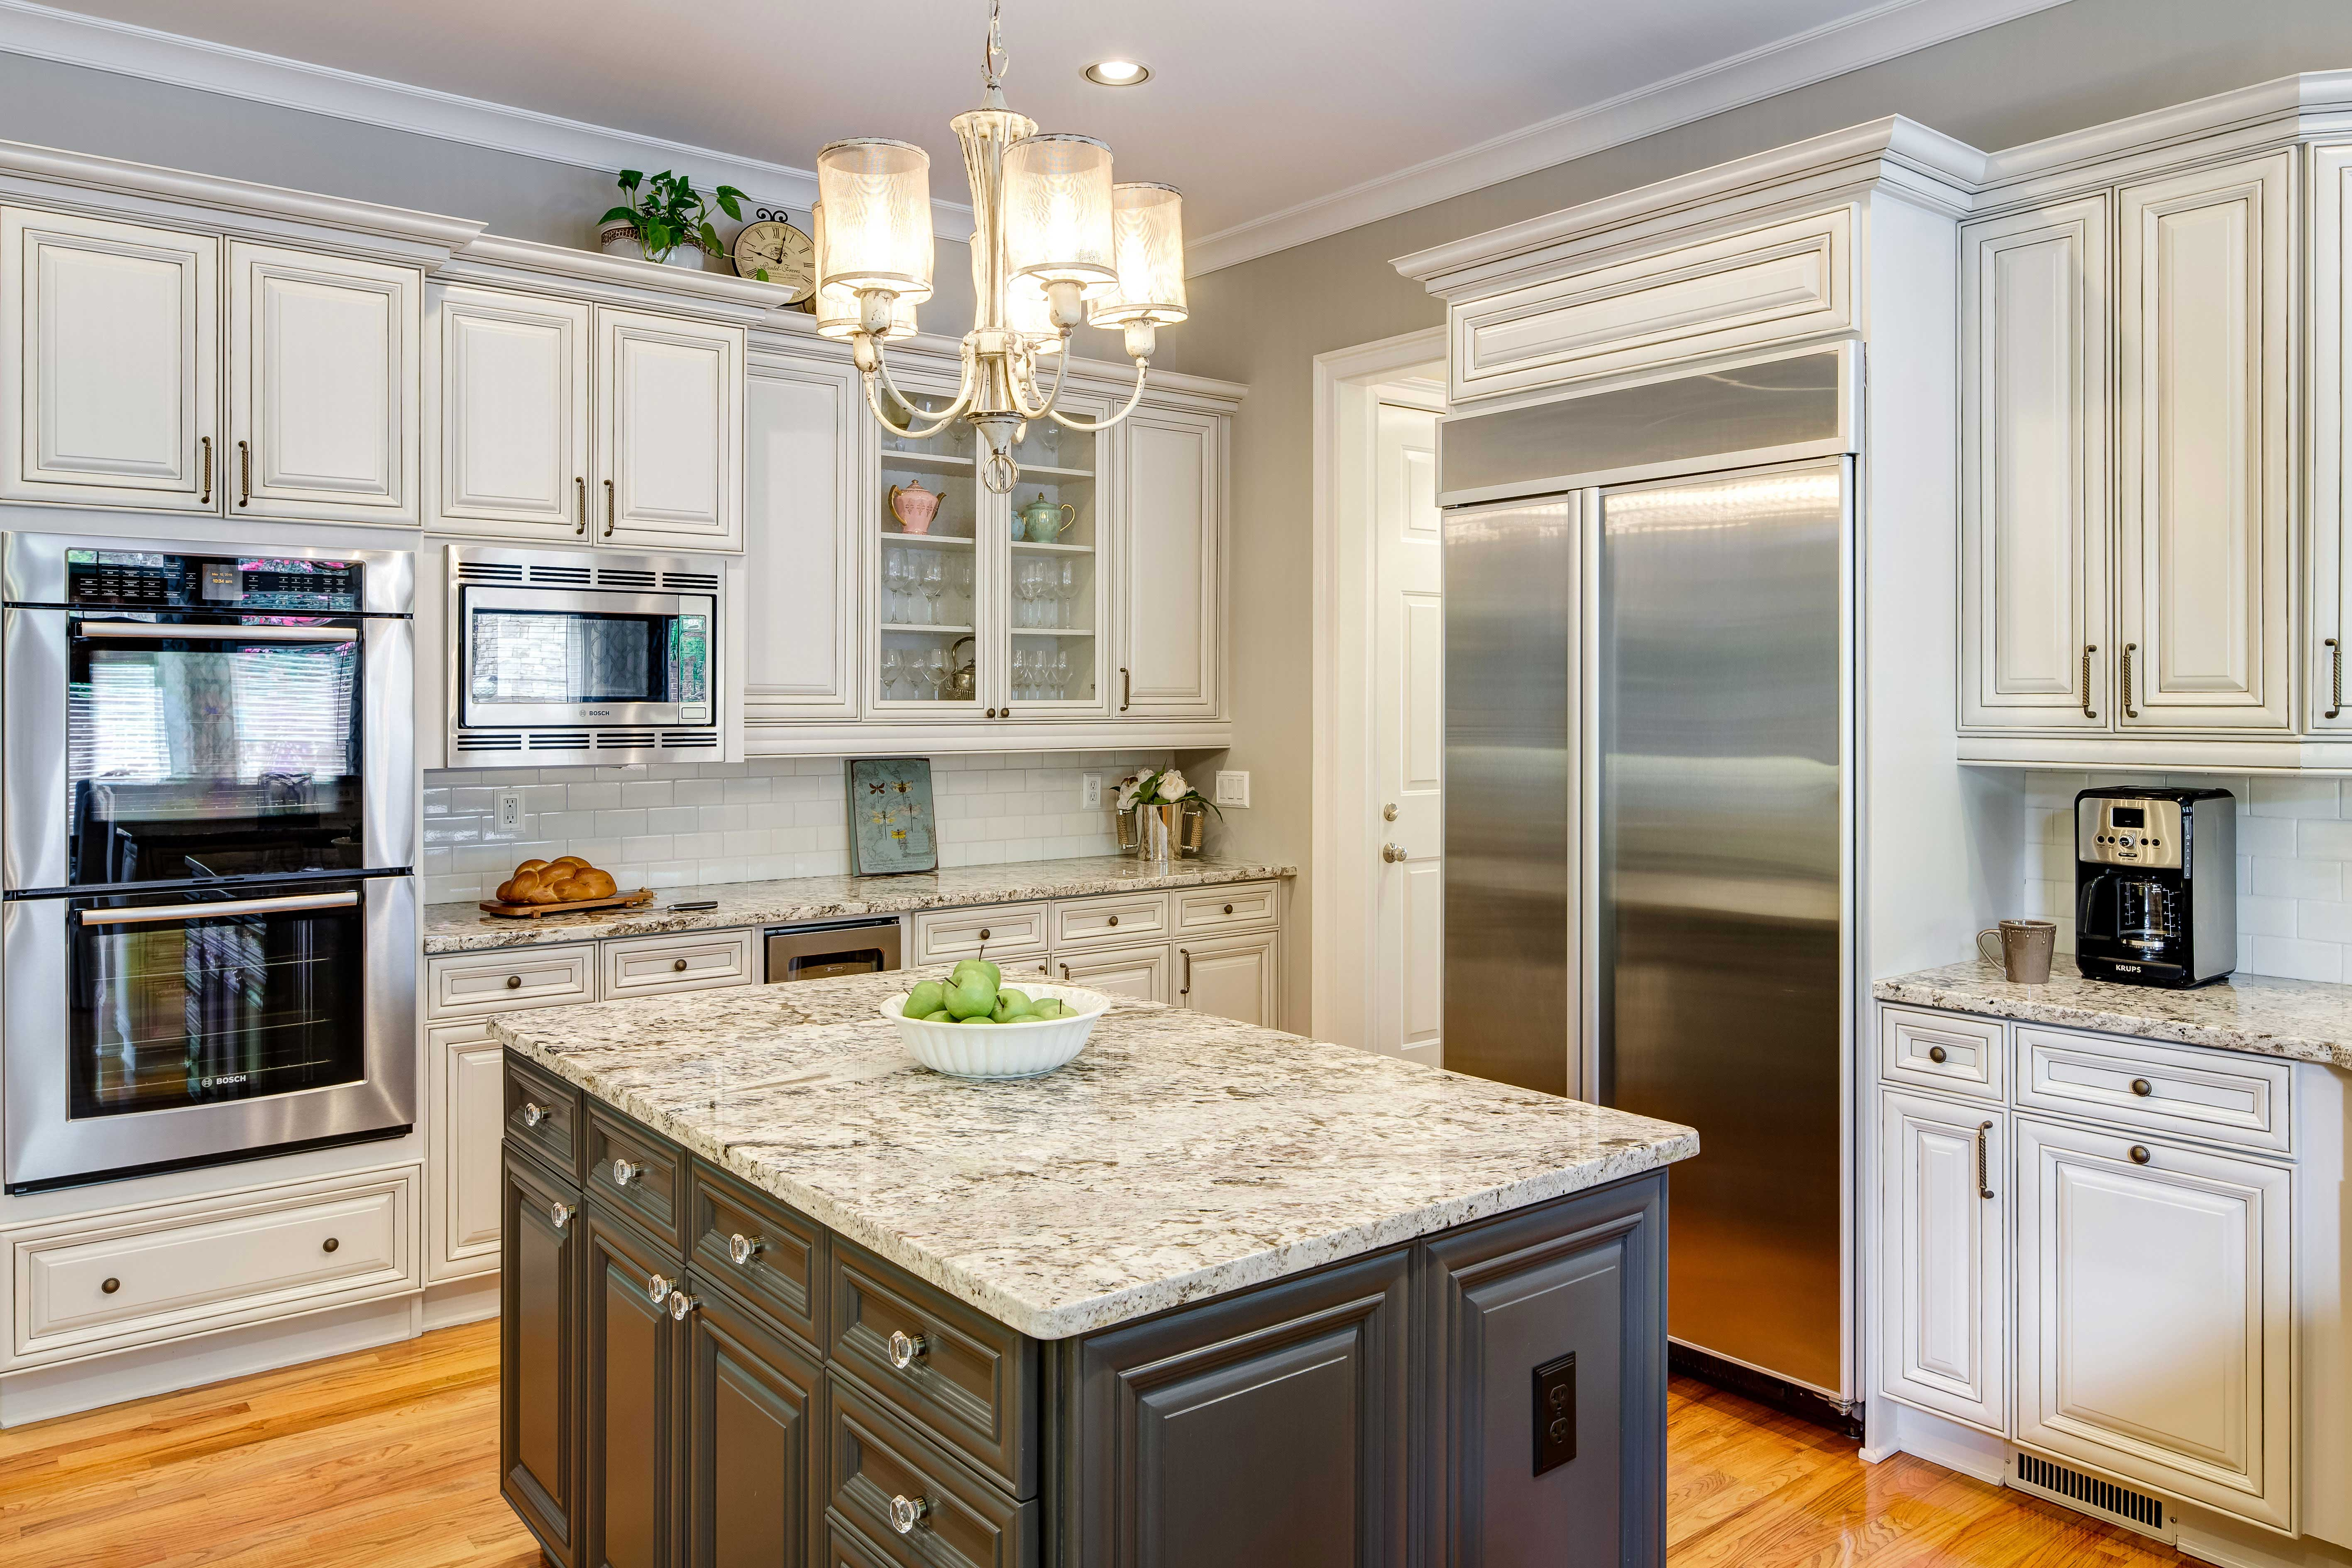 Kitchen Cabinetry and Island Accent